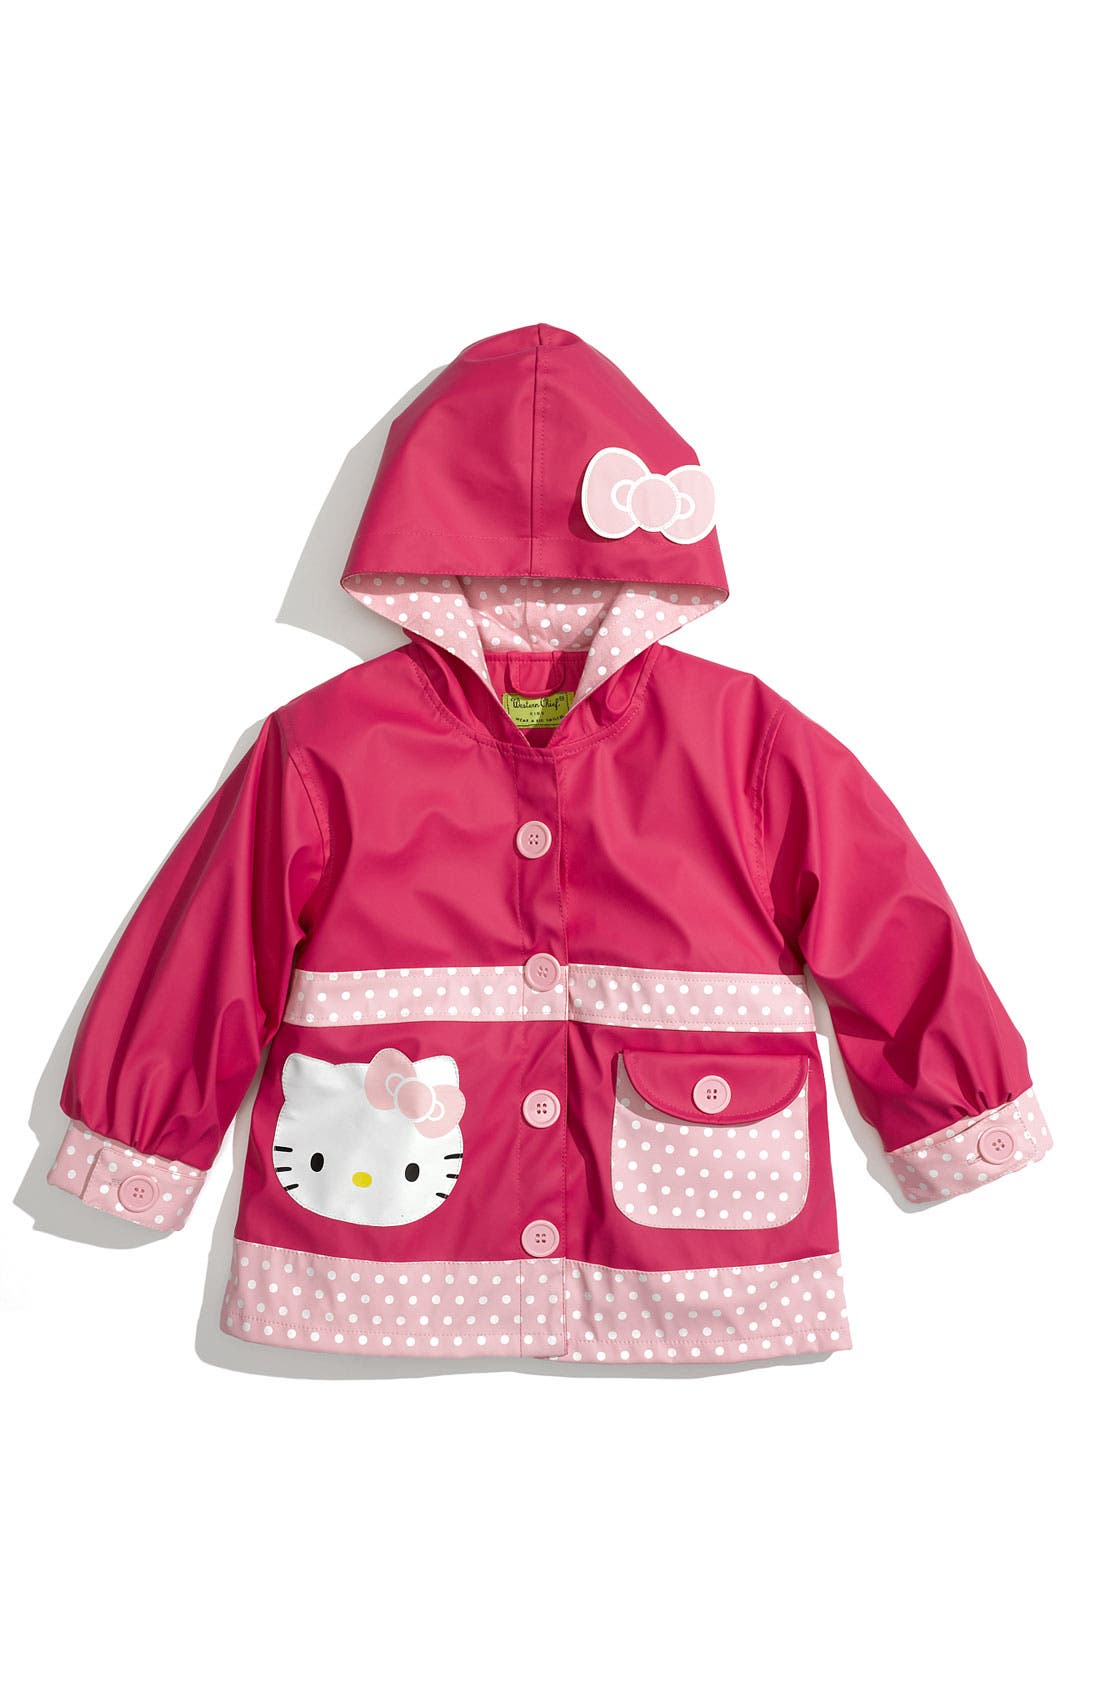 Main Image - Western Chief 'Hello Kitty® Ruffles' Raincoat (Toddler Girls & Little Girls)